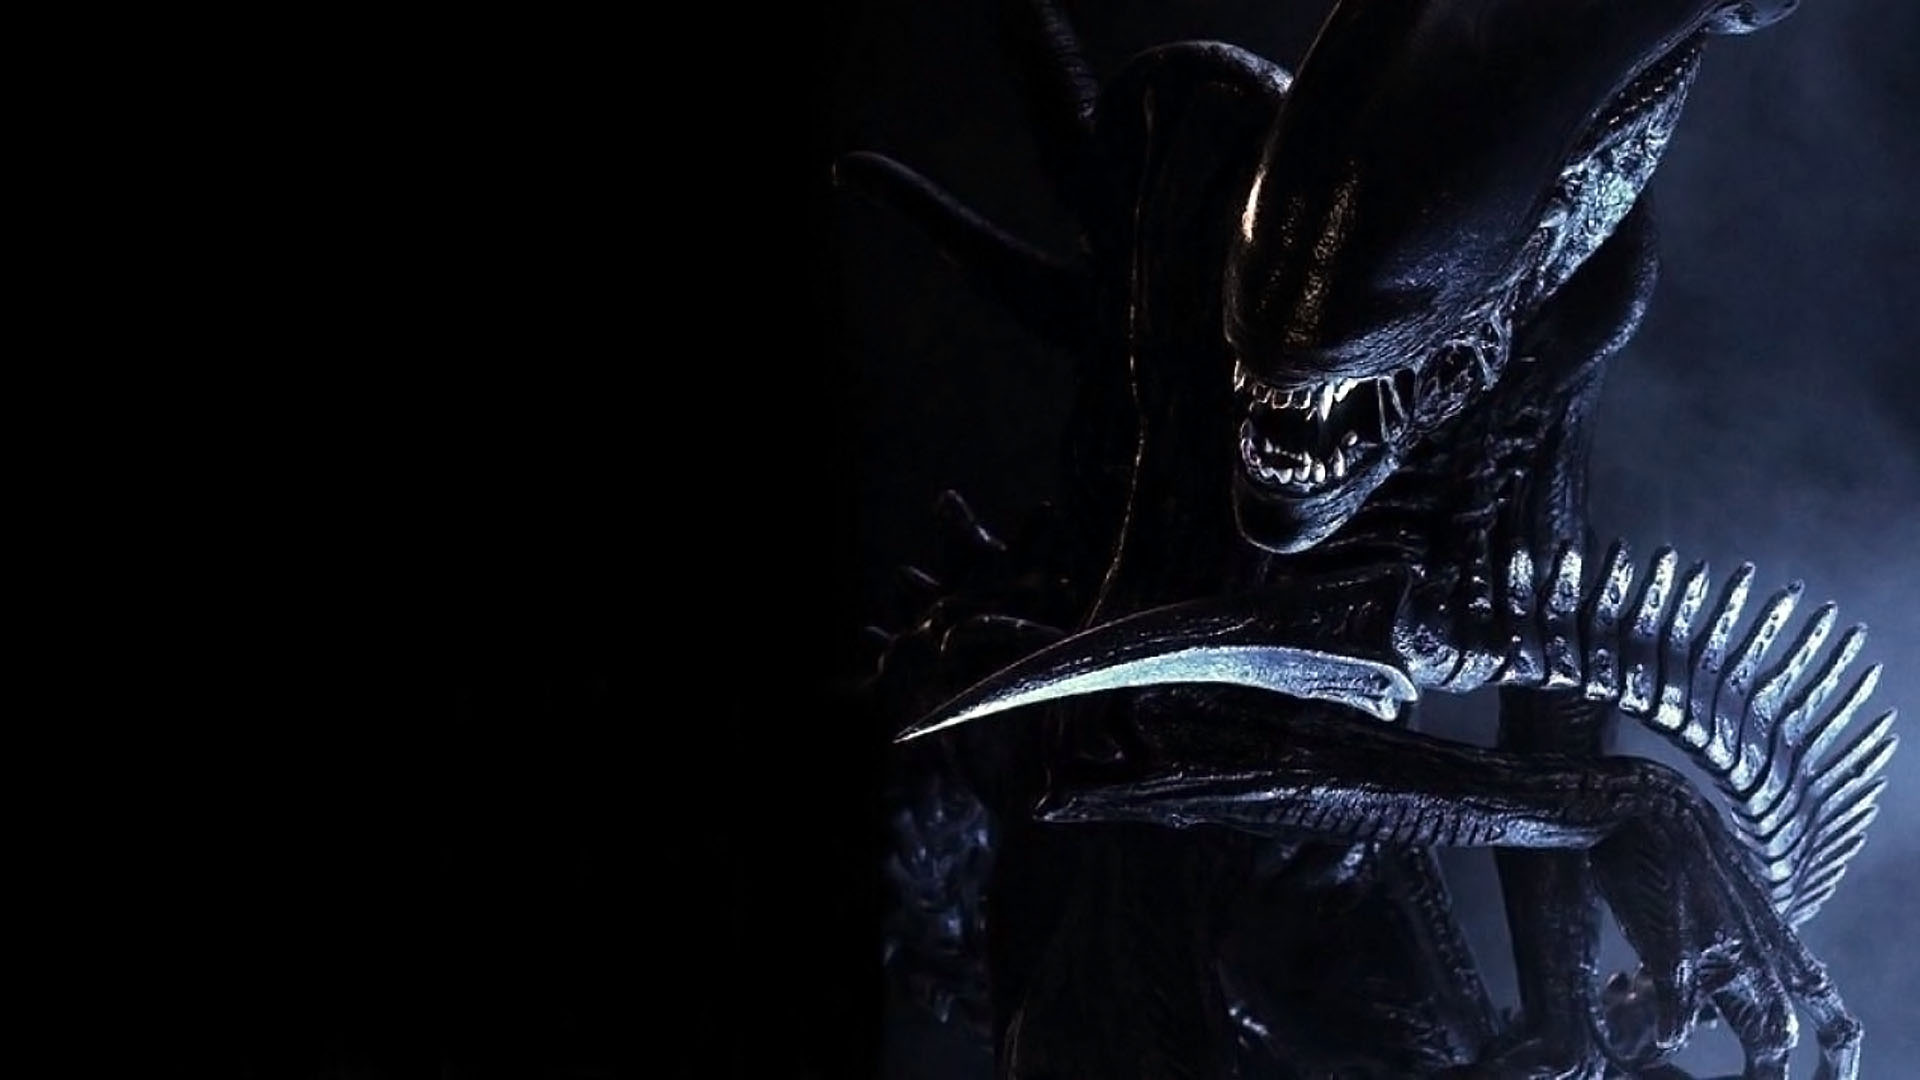 Aliens Wallpaper HD Wallpapers Aliens Wallpapers 48jpg 1920x1080